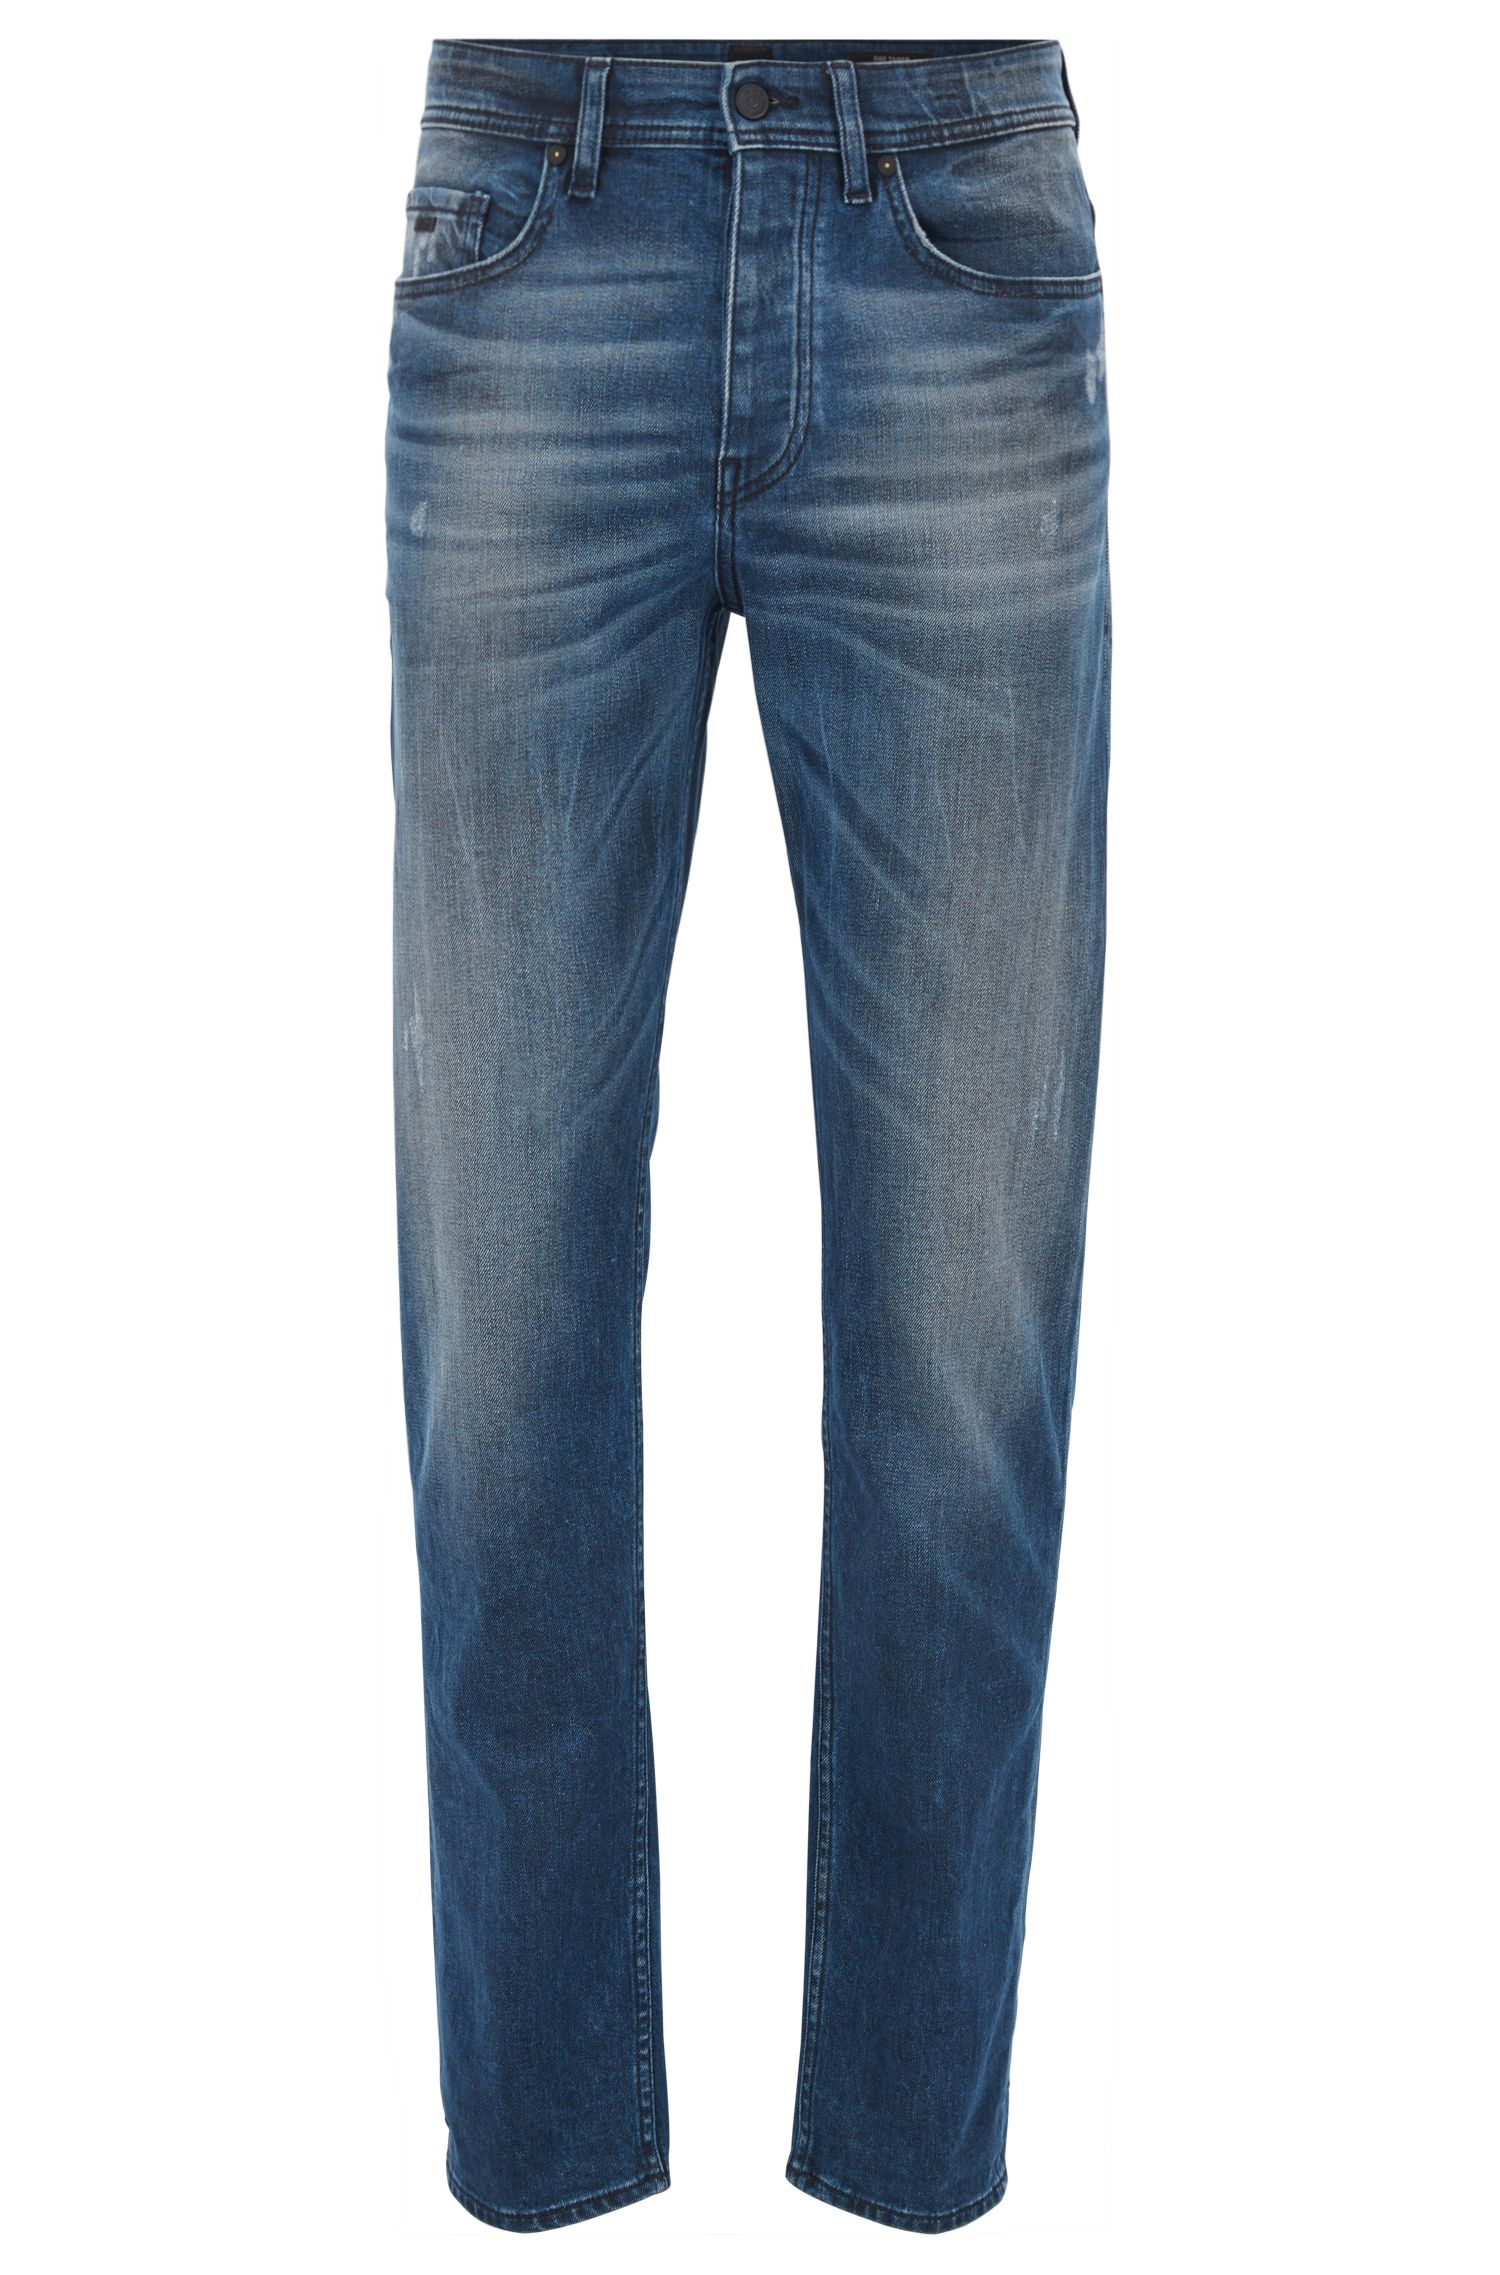 Vaqueros tapered fit de denim elástico en azul medio, Azul